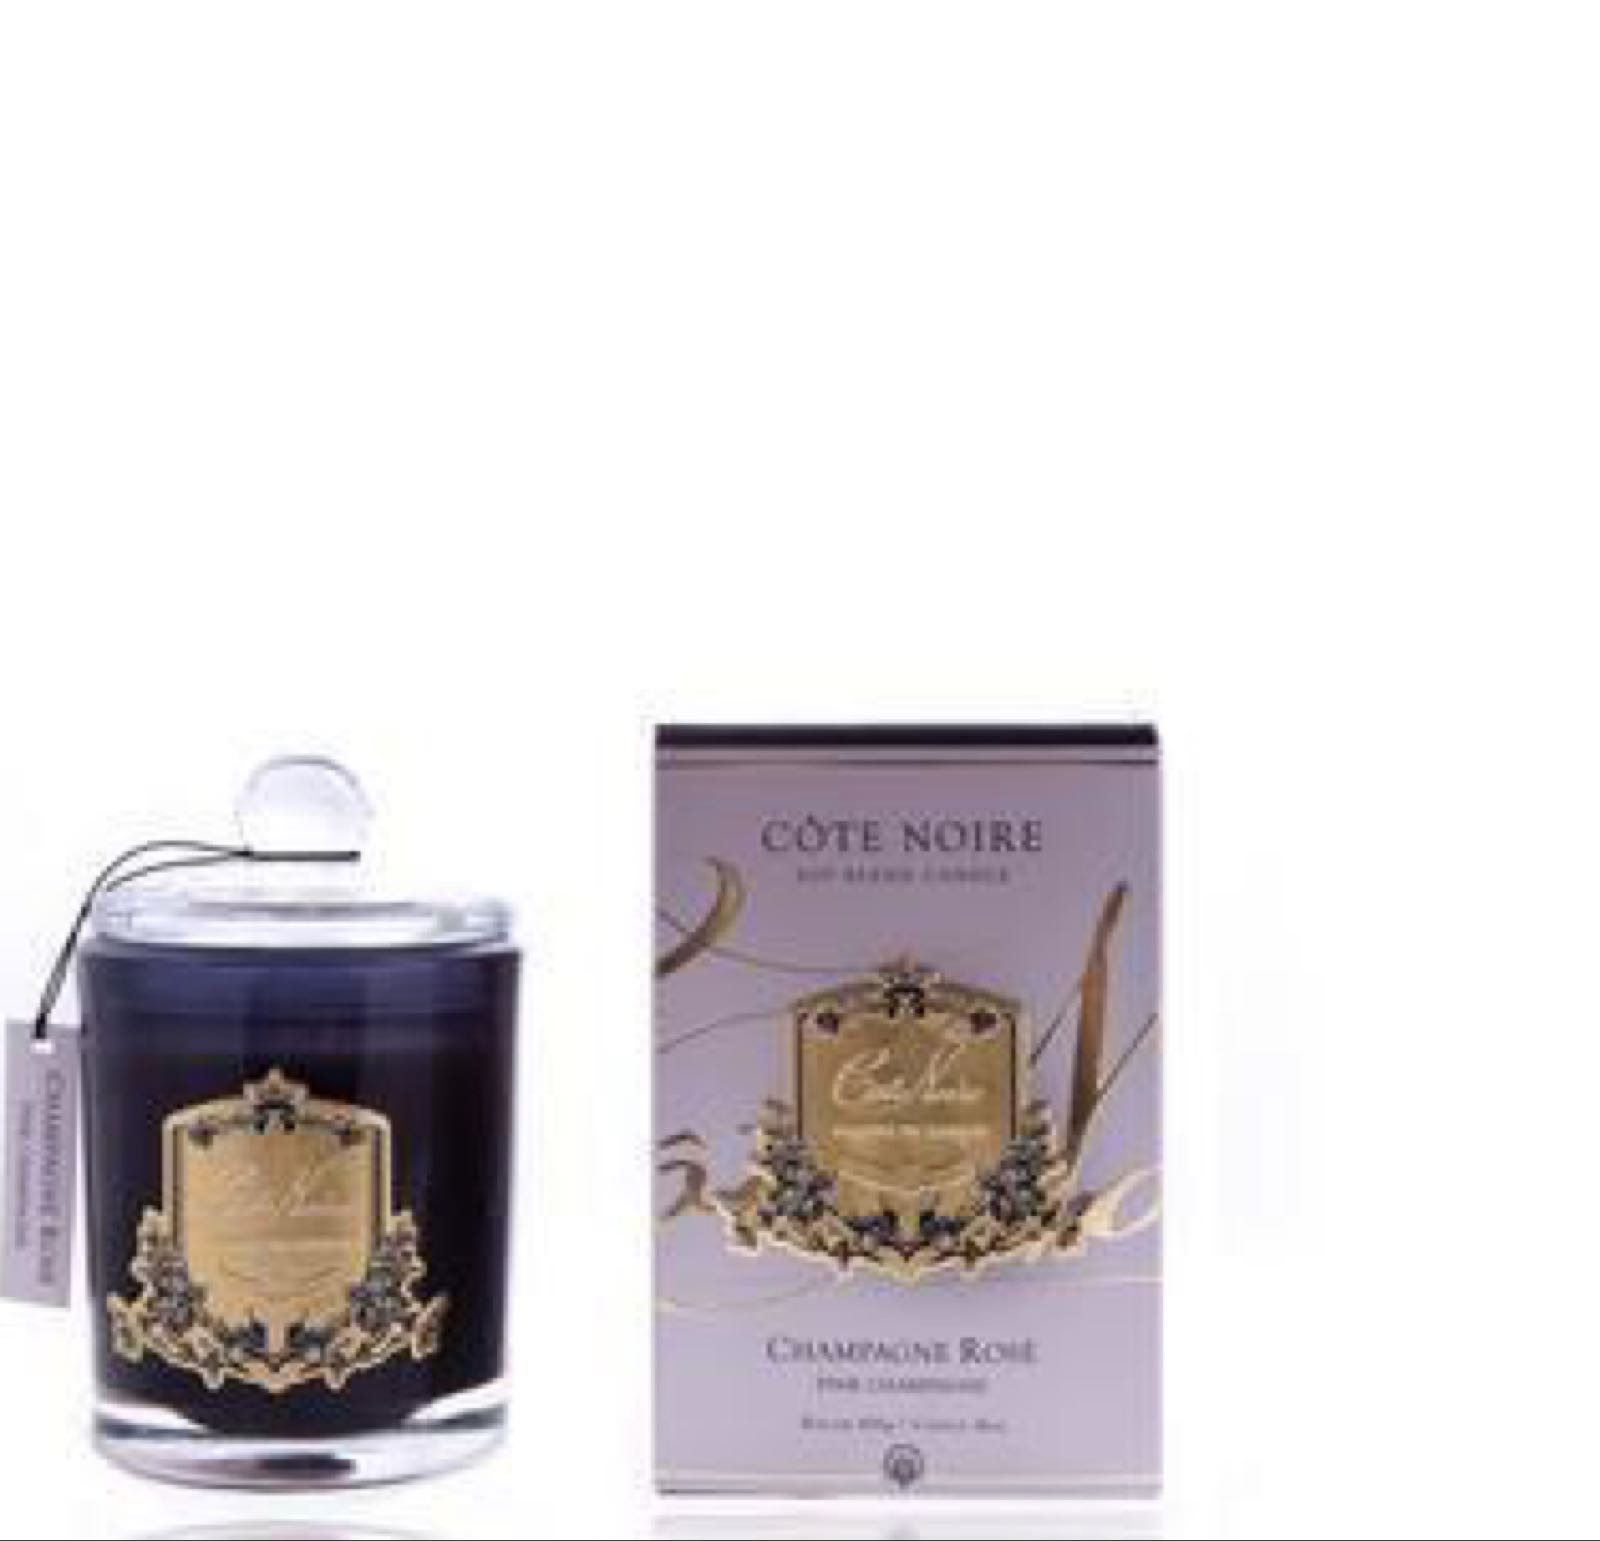 Cote noire pink champagne small candle